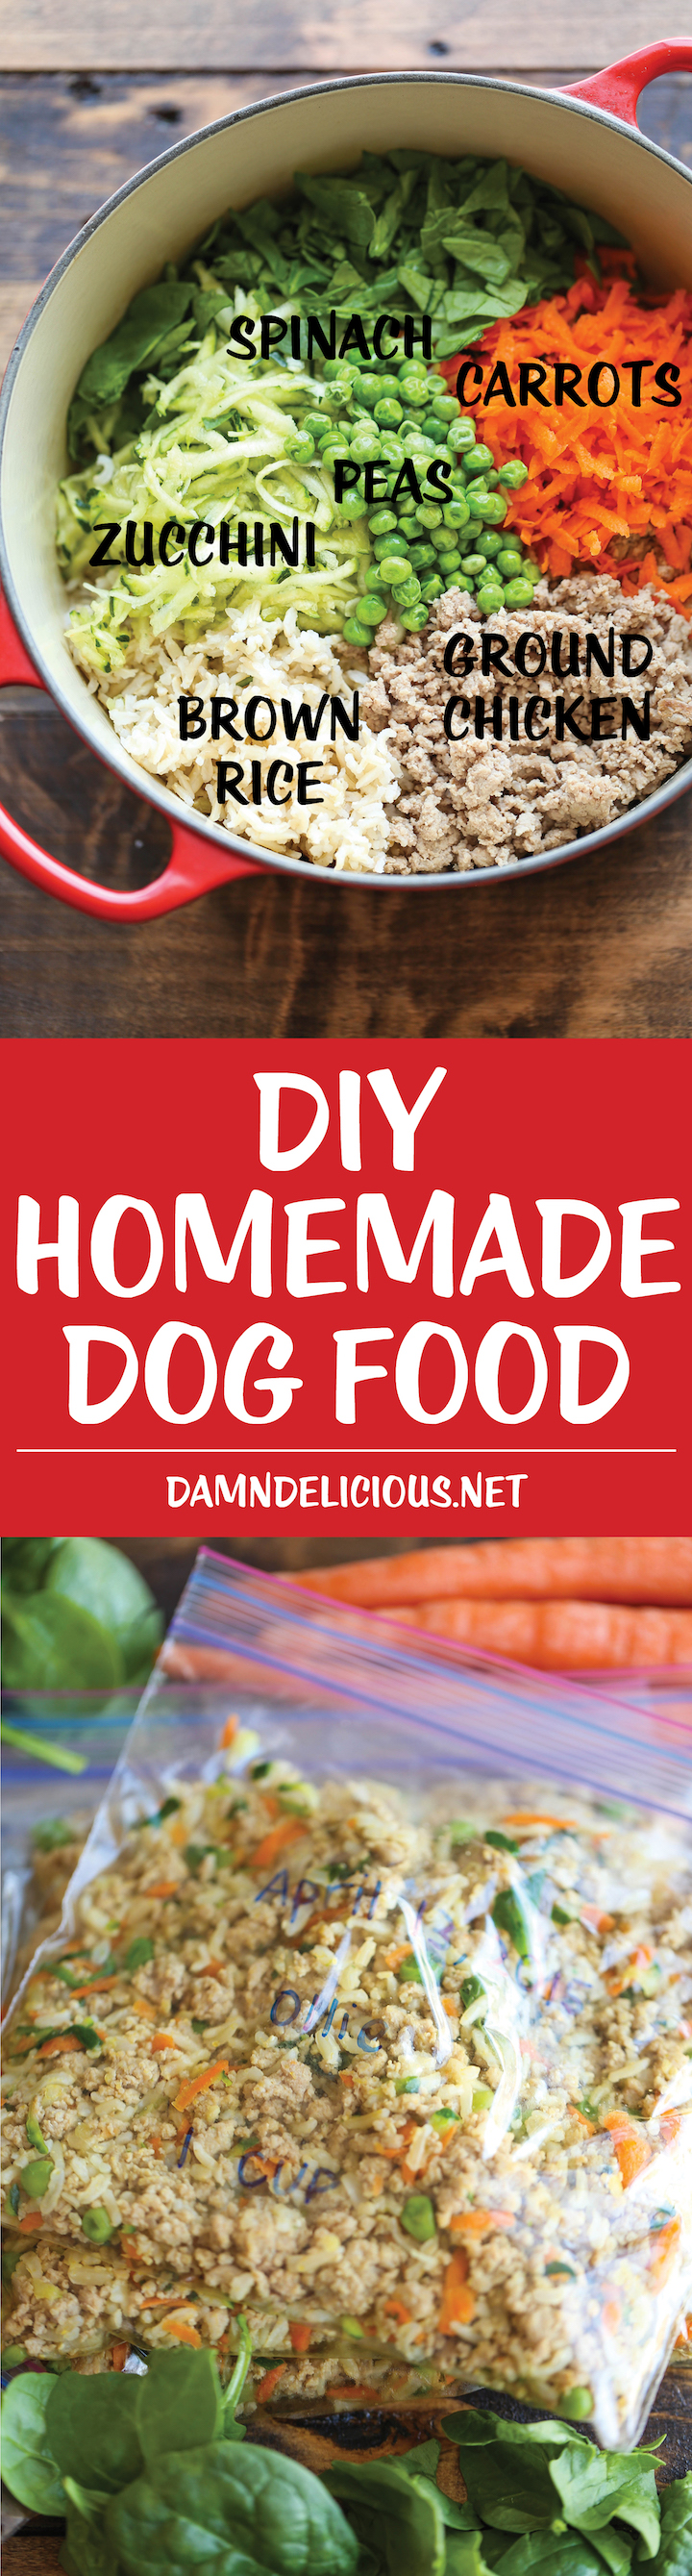 Diy homemade dog food damn delicious diy homemade dog food keep your dog healthy and fit with this easy peasy homemade forumfinder Image collections